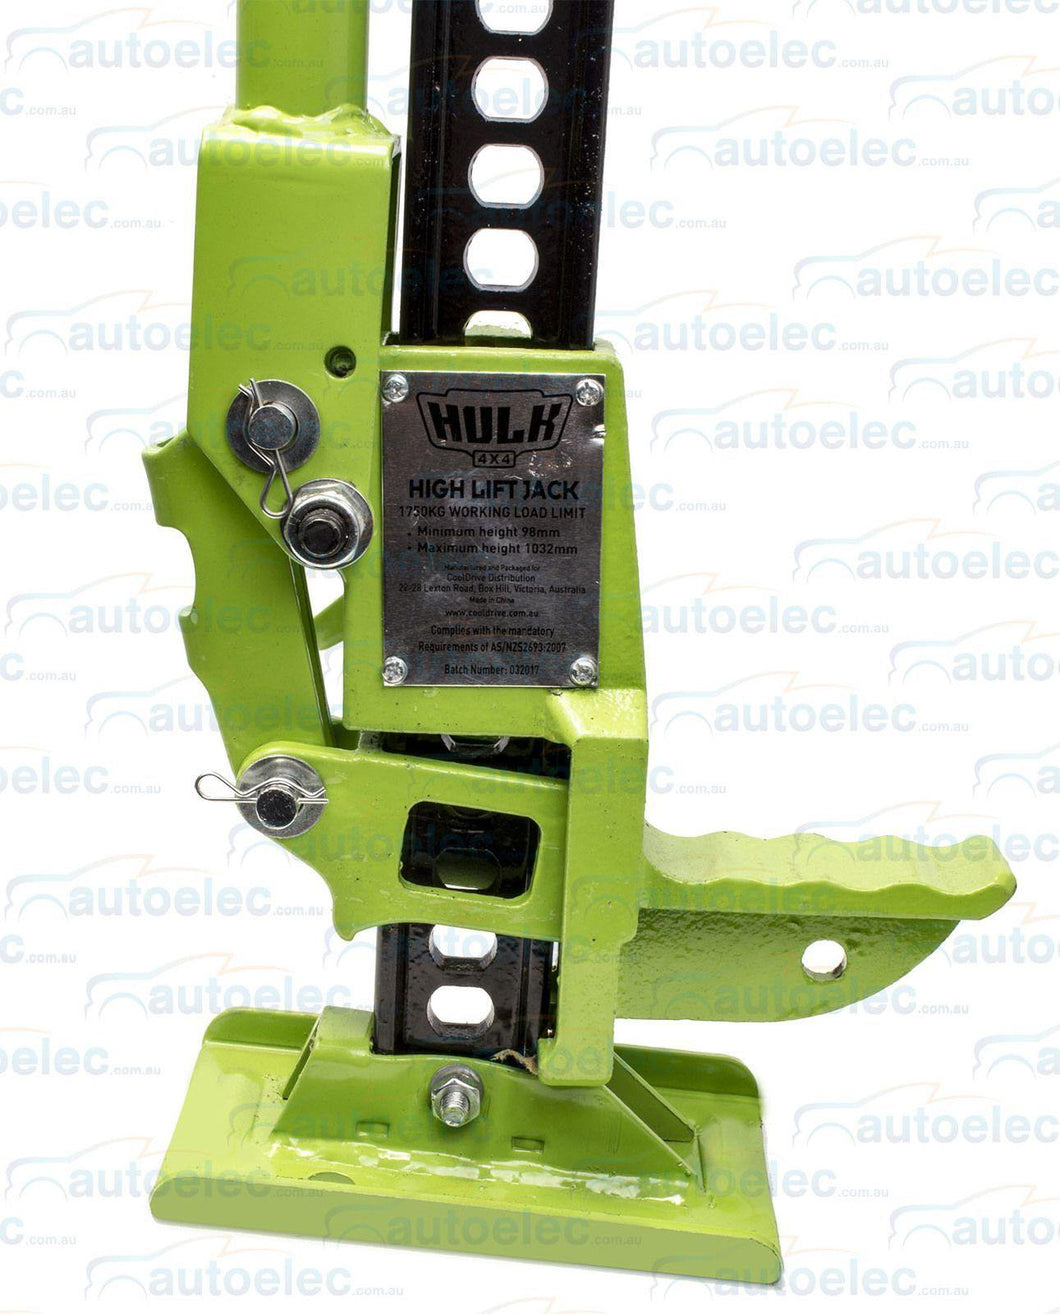 Hulk High Lift Jack 48